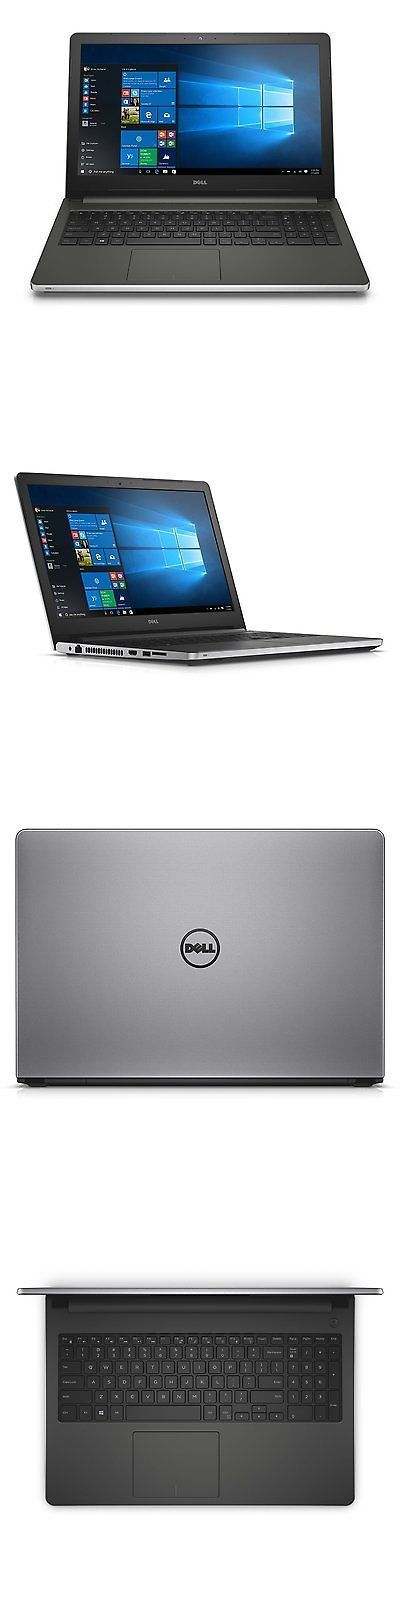 Awesome Dell Laptops 2017: general for sale: Dell Inspiron I5559-4682Slv 15.6 Fhd Touchscreen Intel Core I5...  General For Sale Check more at http://mytechnoworld.info/2017/?product=dell-laptops-2017-general-for-sale-dell-inspiron-i5559-4682slv-15-6-fhd-touchscreen-intel-core-i5-general-for-sale